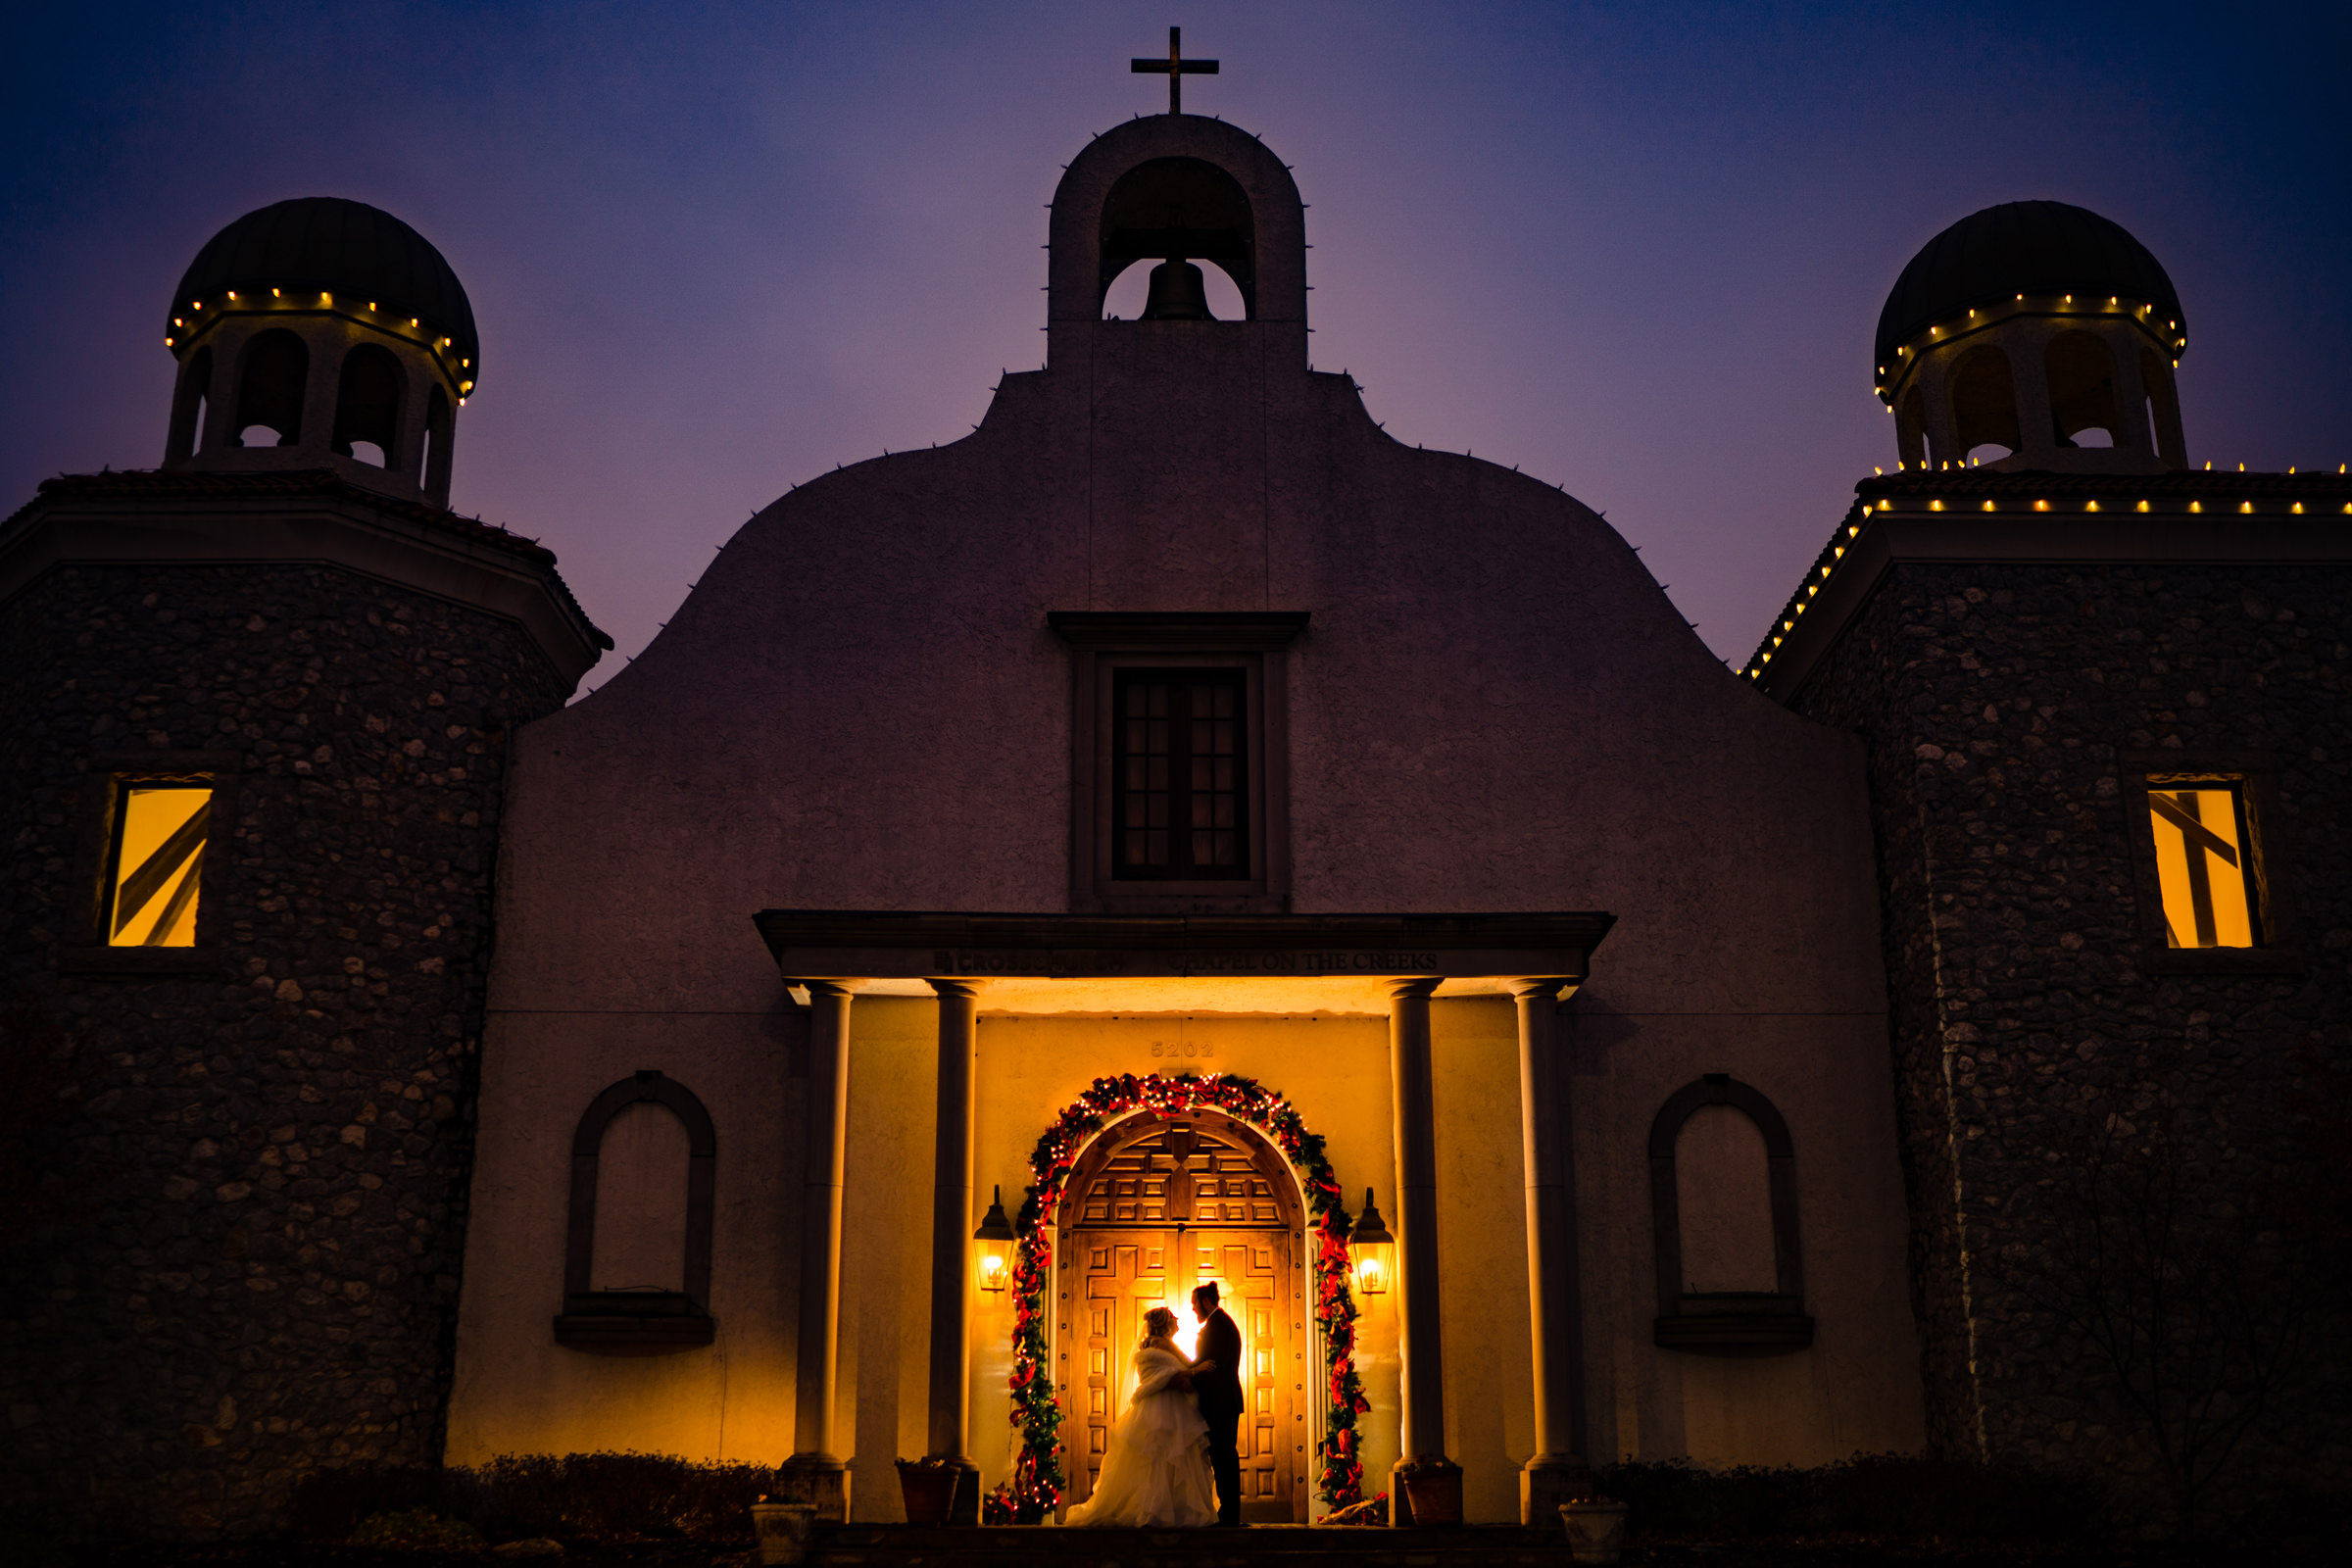 bride-and-groom-back-lit-portrait-in-front-of-their-church-arkansas-photographer-photo-by-vinson-images